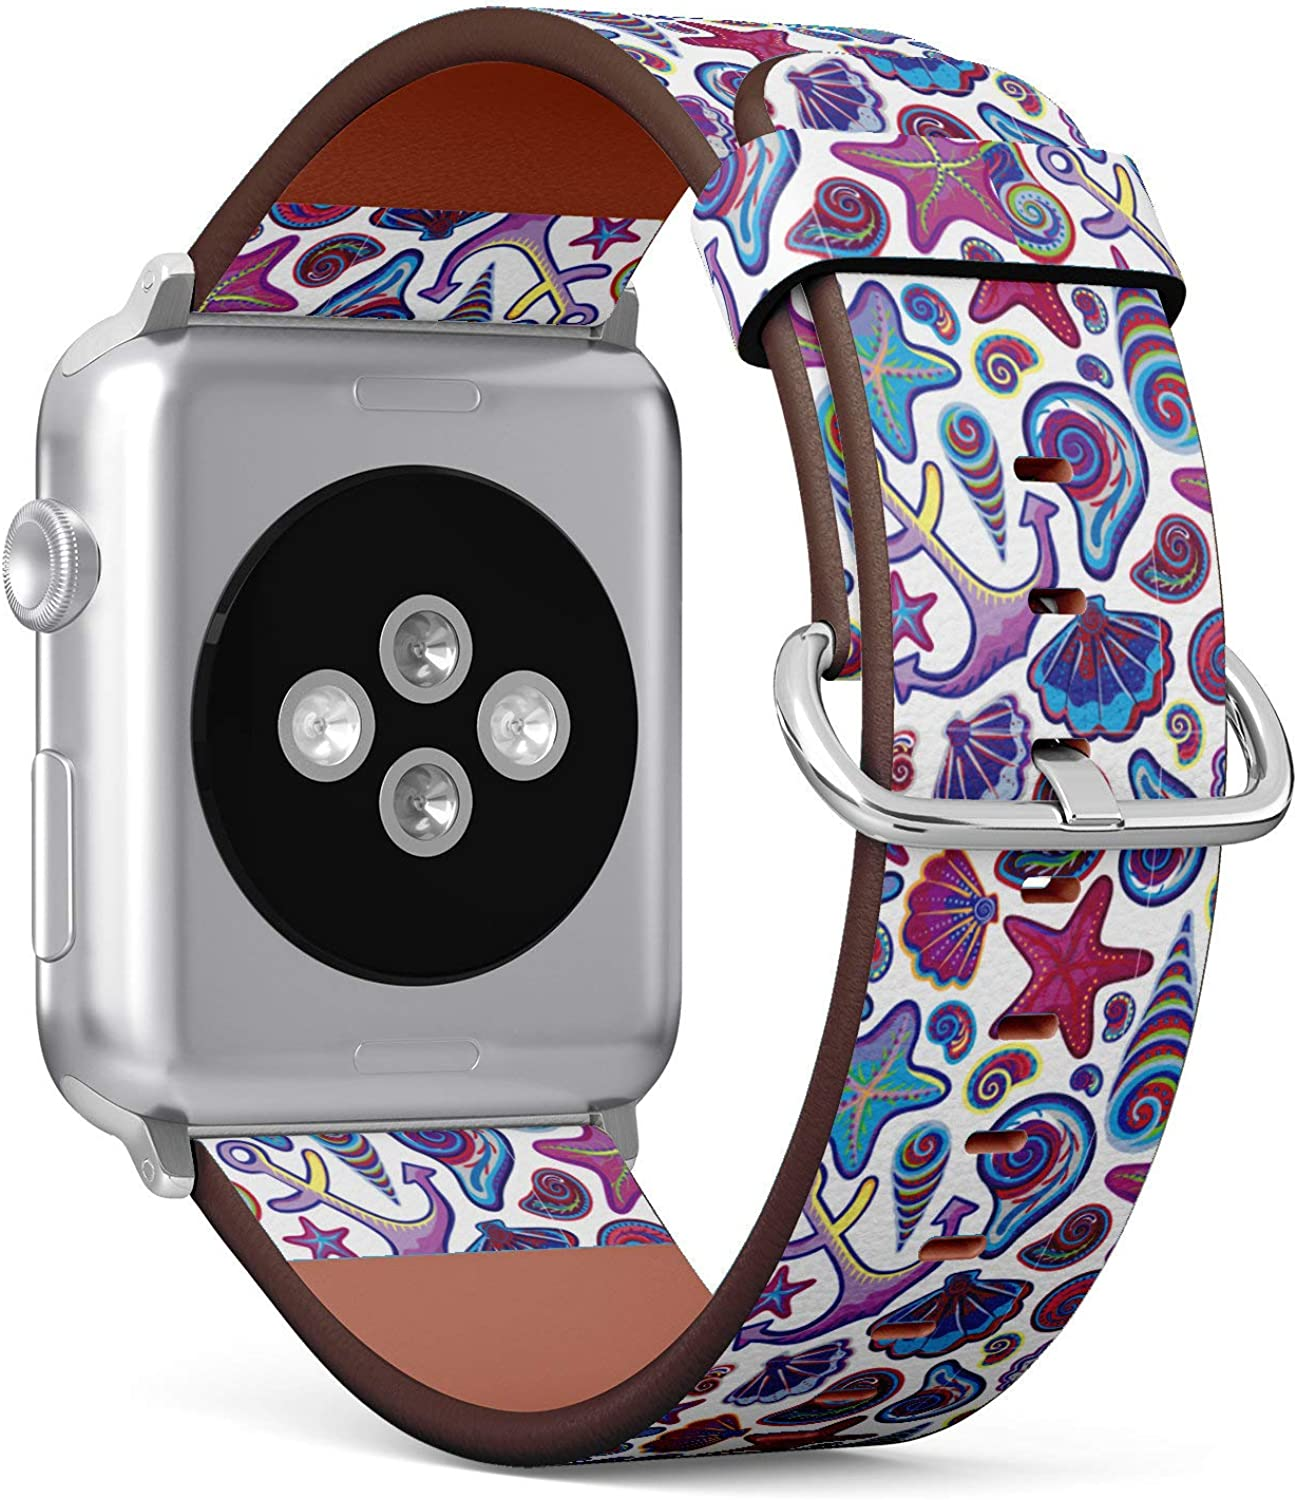 (Hand Draw Pattern with Ocean Shells Starfish Anchor Wheel) Patterned Leather Wristband Strap Compatible with Apple Watch Series 4/3/2/1 gen,Replacement of iWatch 38mm / 40mm Bands